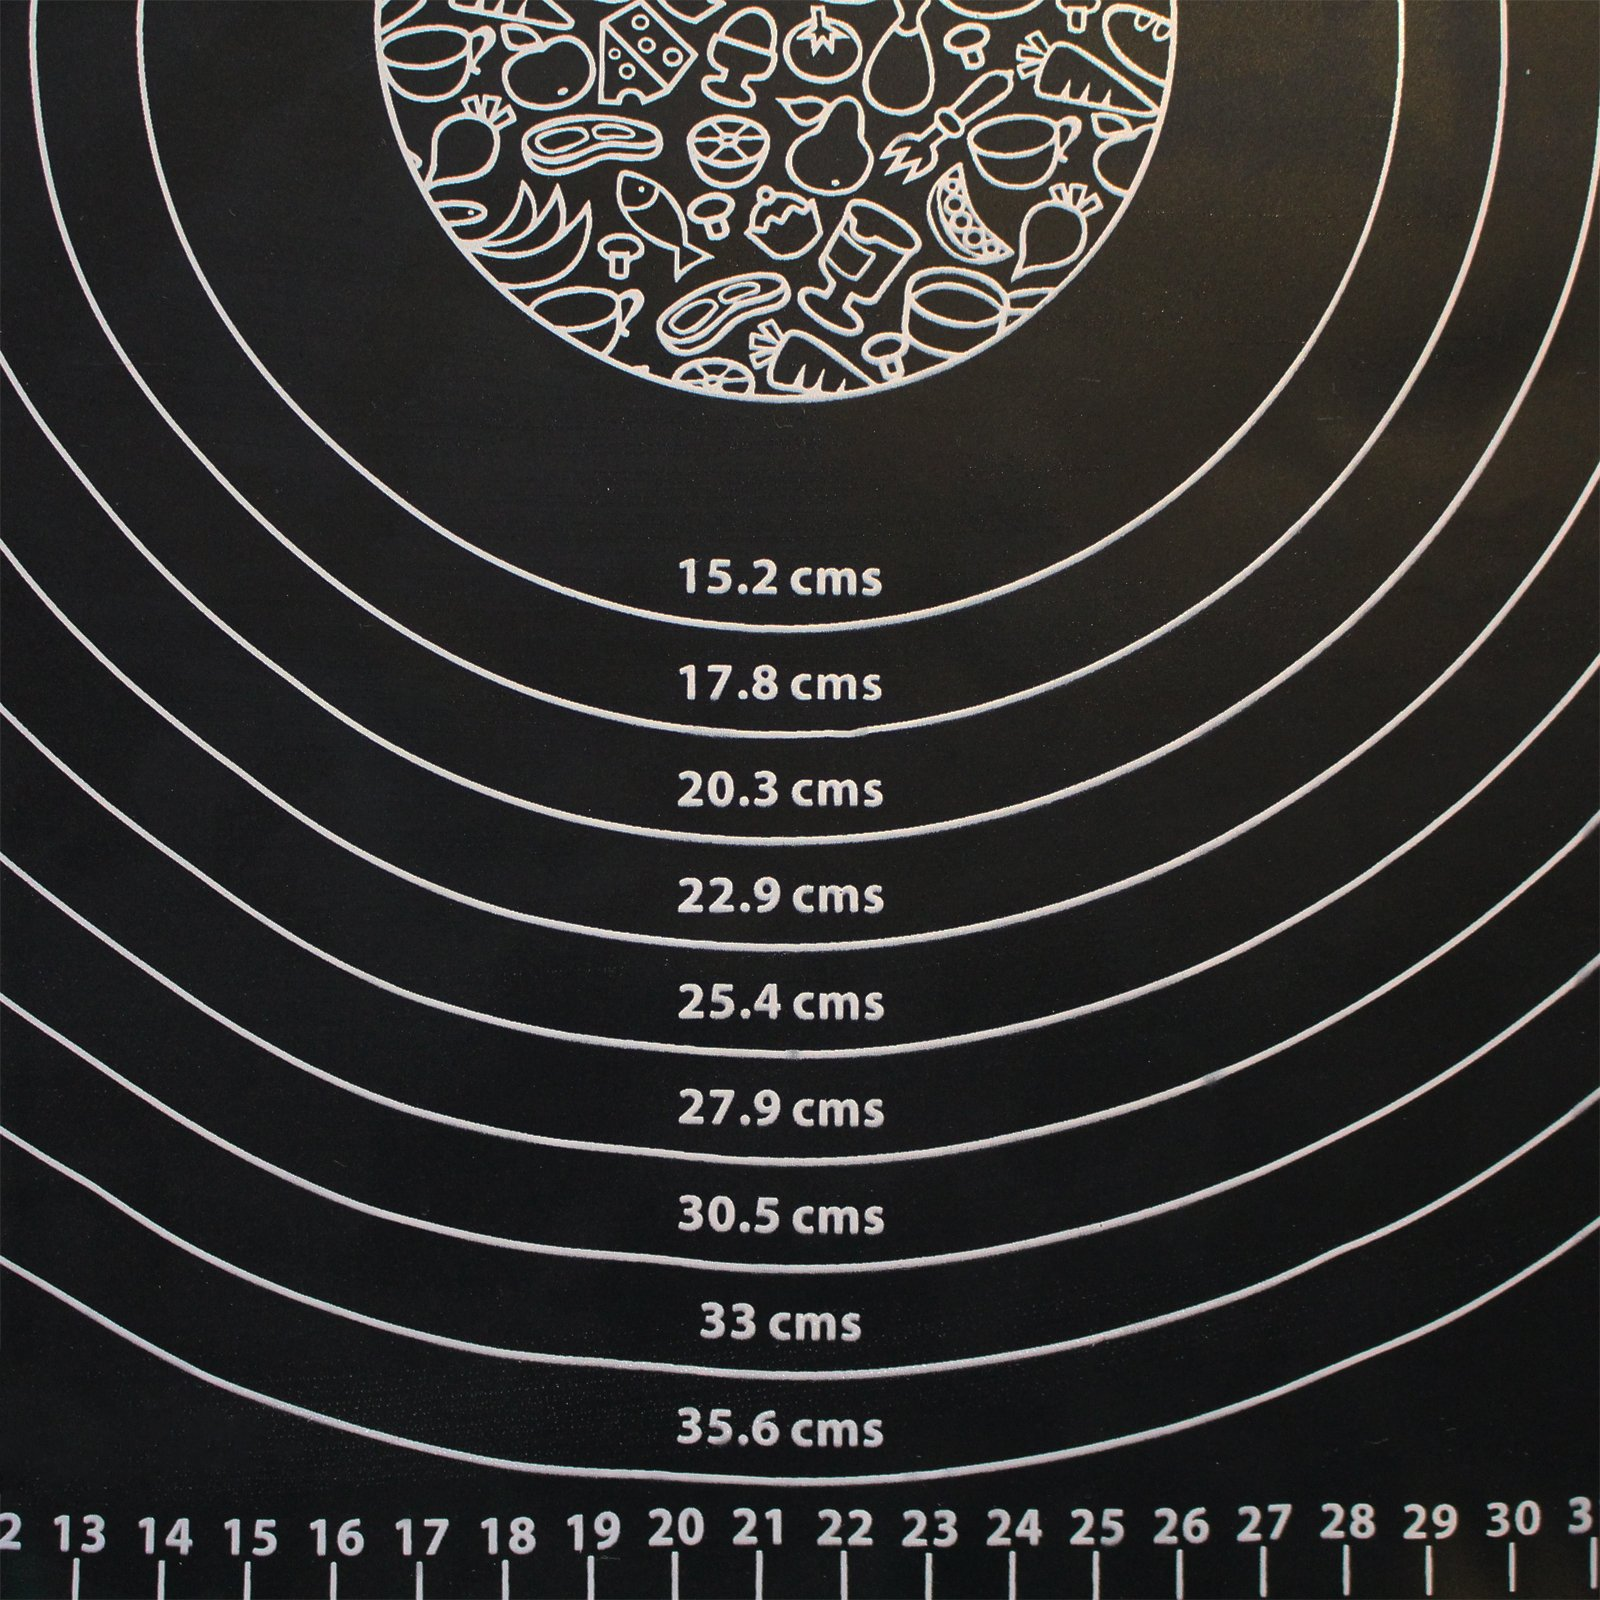 Kurtzy Silicone Rolling Mat - (50 x 40cm) Non Stick Pastry Mat with Measuring Guide - No Slip Fondant Mat for Cake Decorating - Baking Mat - Kneading Mat - Cookie Dough Mat - Dishwasher Safe by Kurtzy (Image #3)